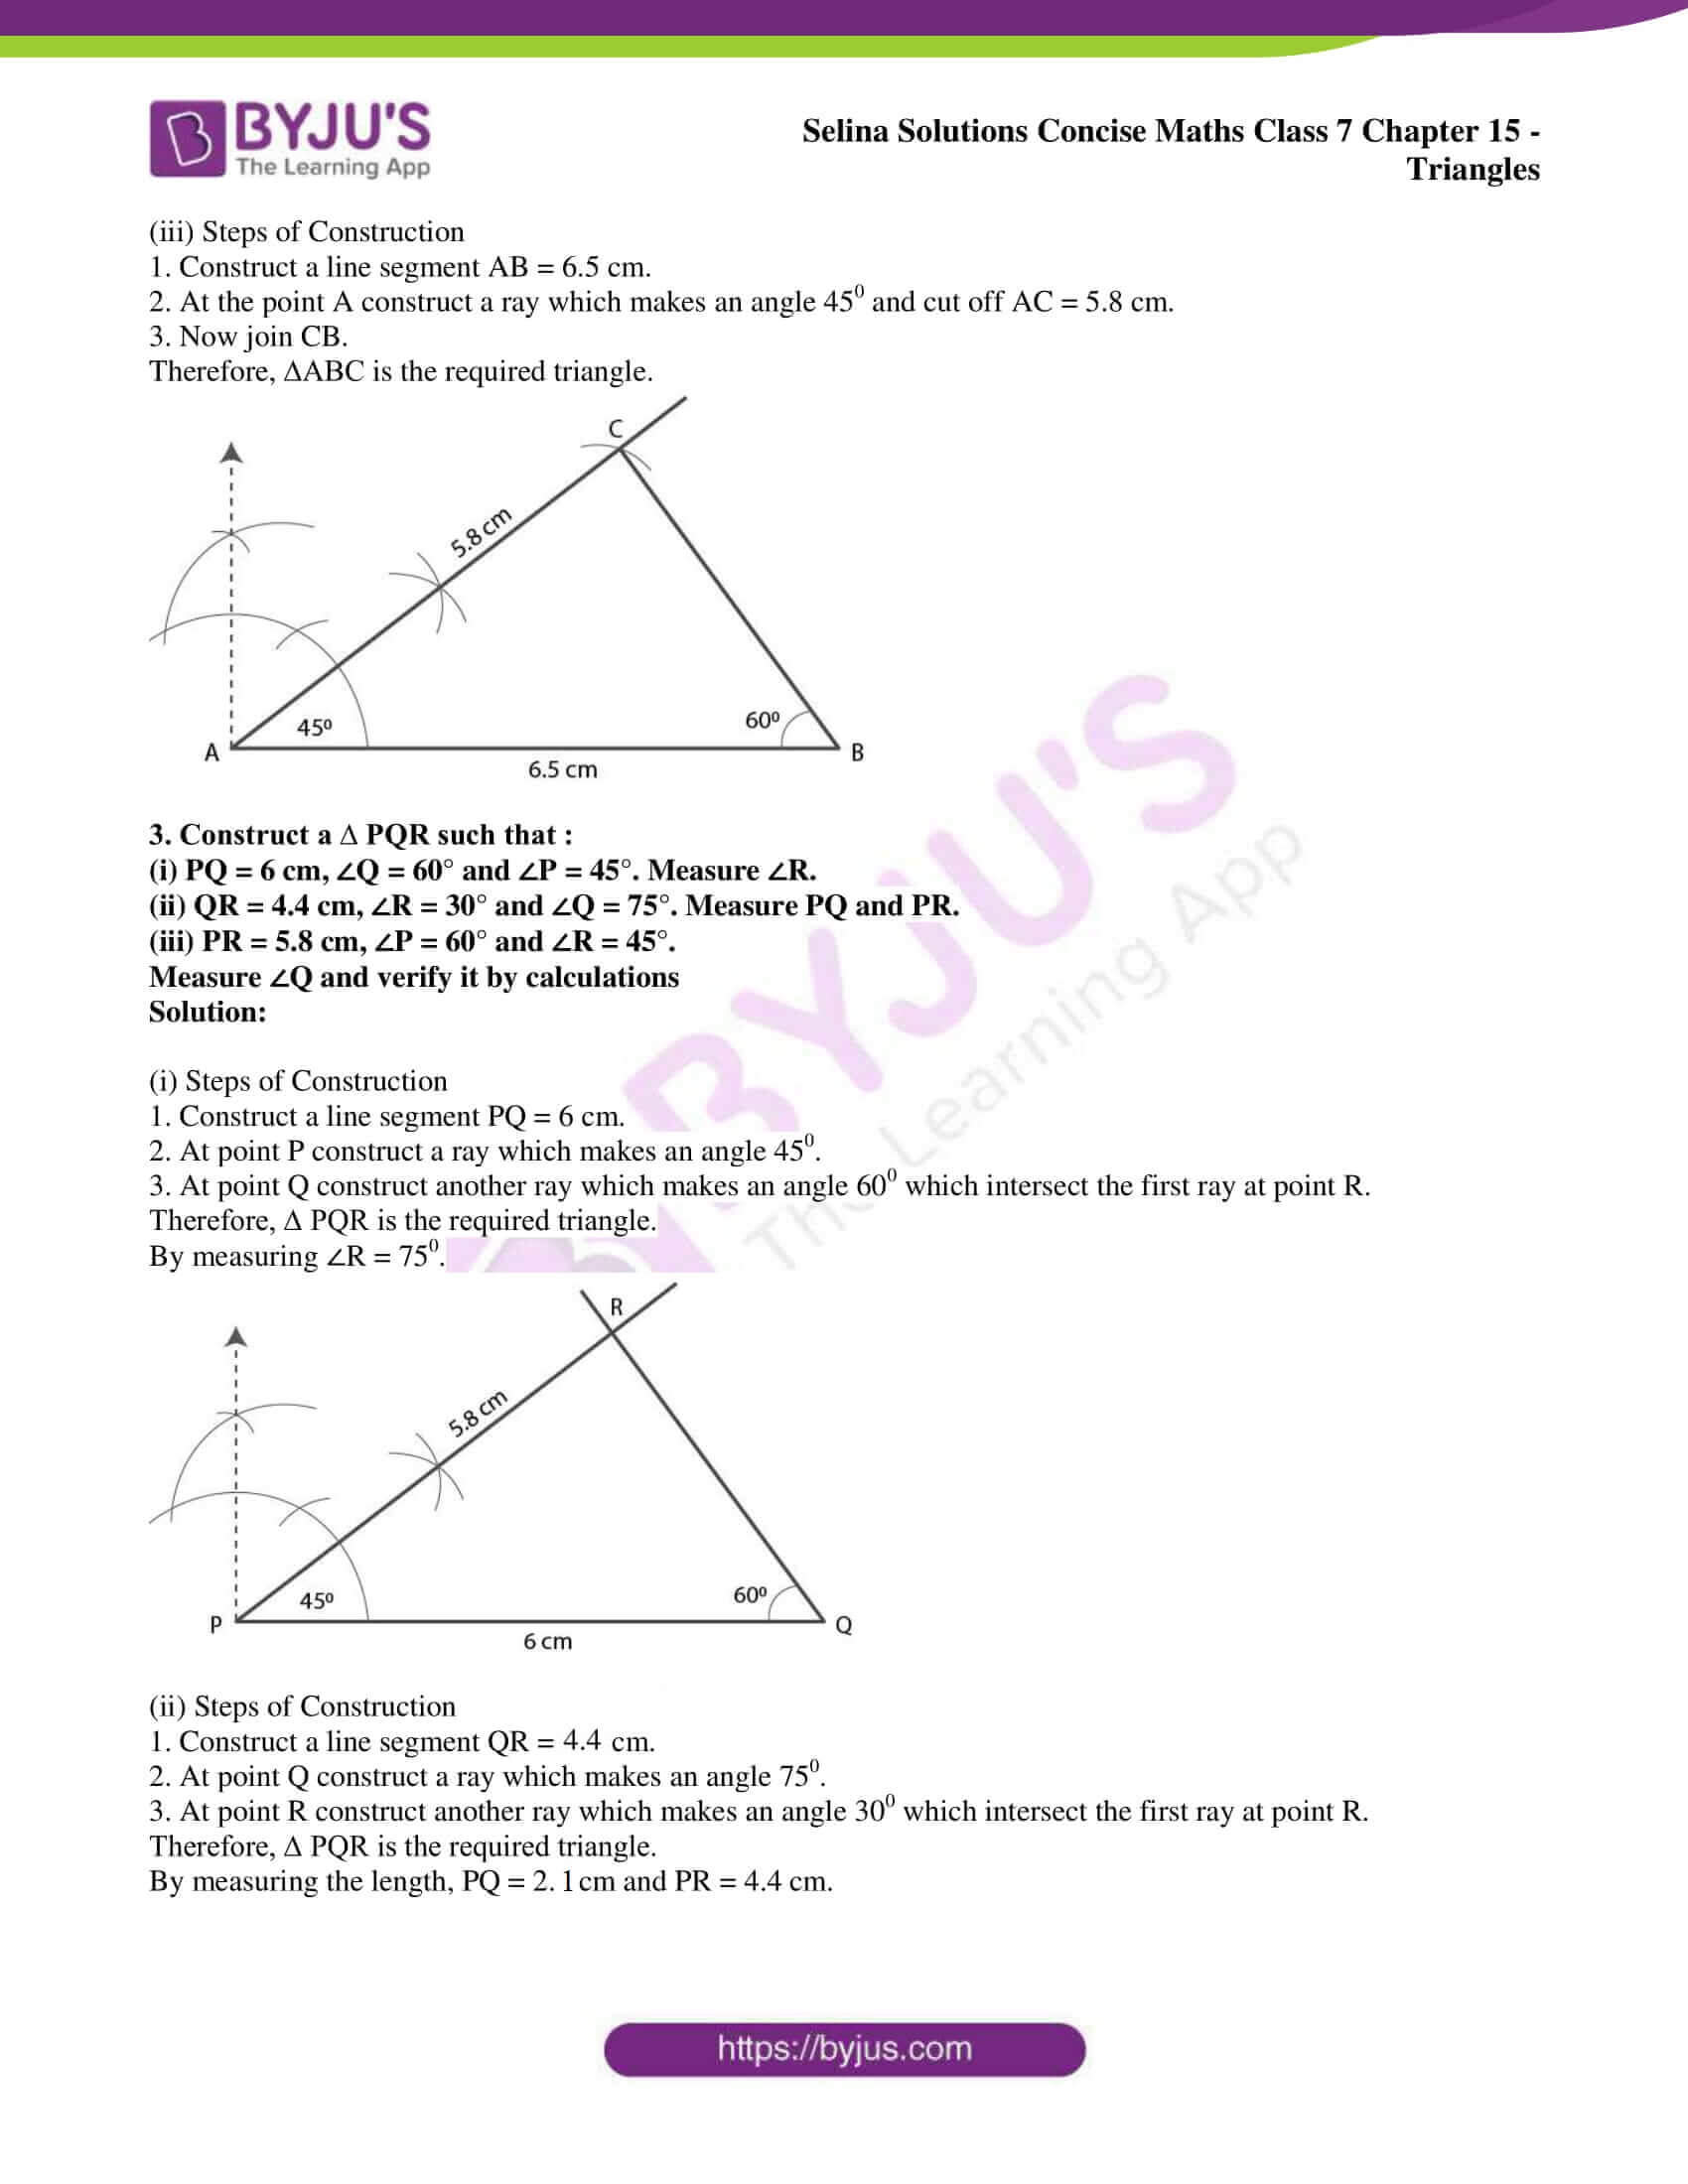 hight resolution of Selina Solutions Concise Maths Class 7 Chapter 15 Triangles Exercise 15C PDF